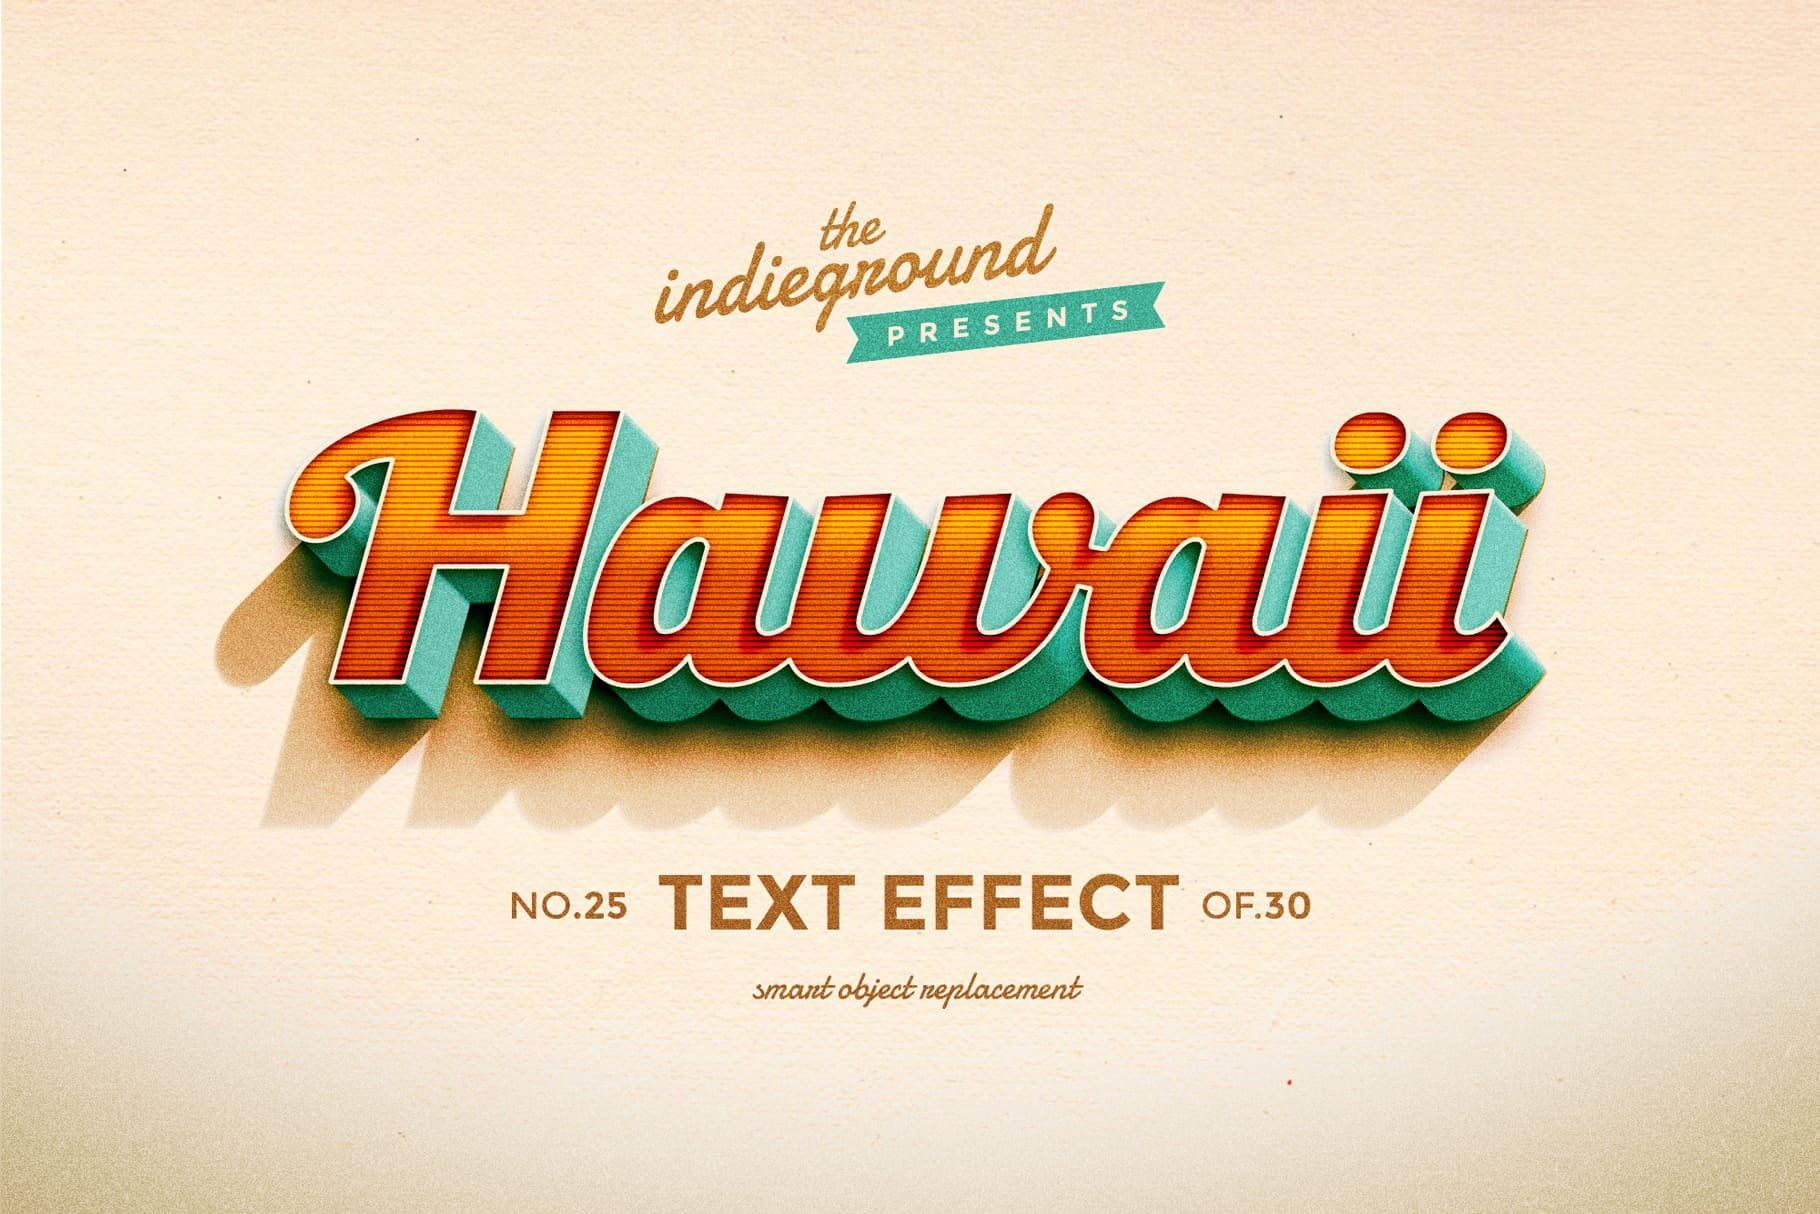 Retro Text Effects Vol 3 Retro Text Vintage Text Text Effects